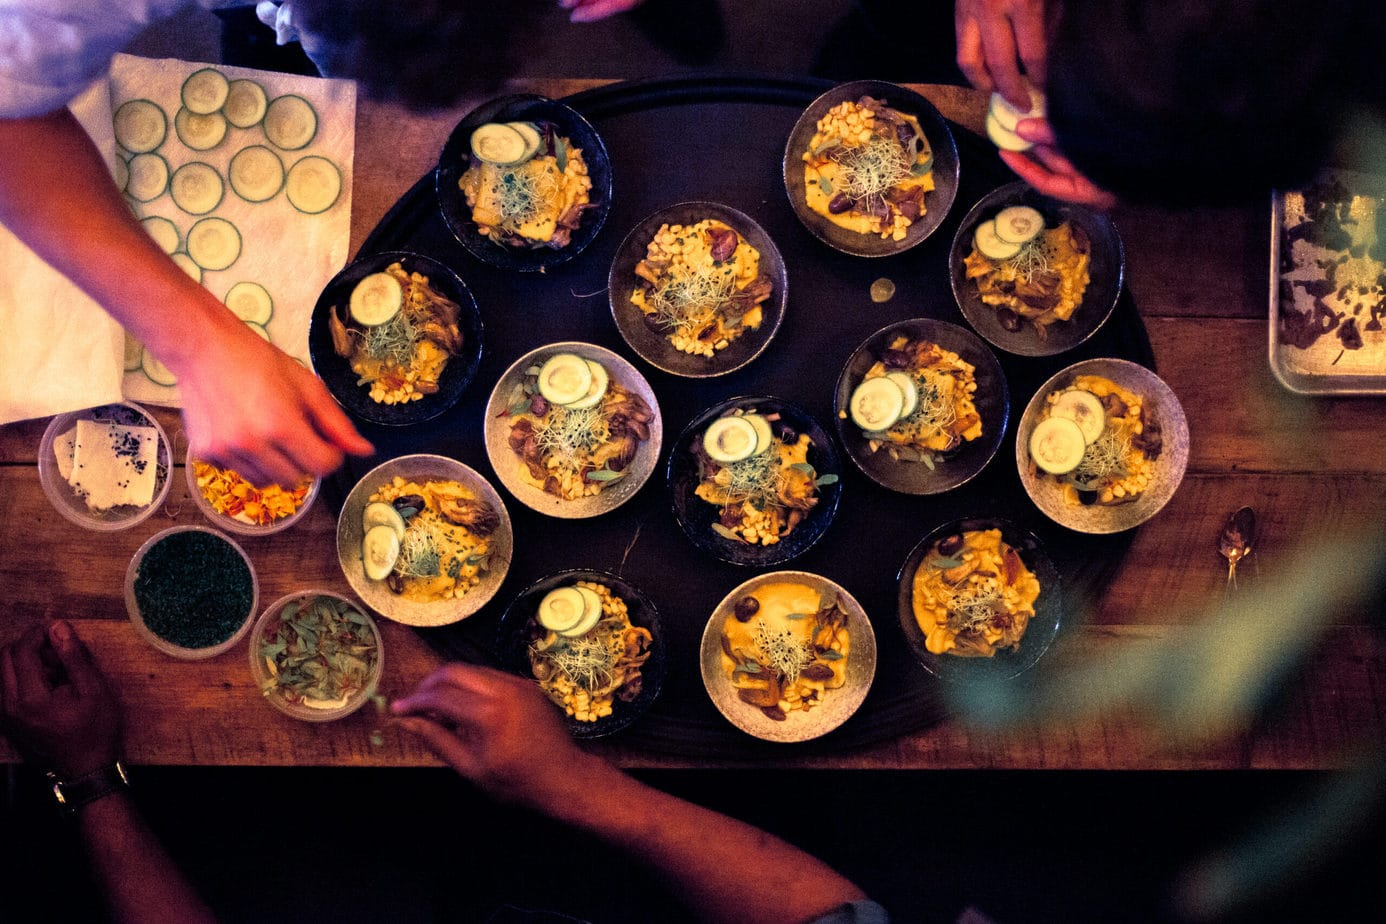 The Herbal Chef is a culinary platform specializing in incorporating plant medicine into avant-garde cuisine: private in-home dining, meal prep, content creation, event catering.